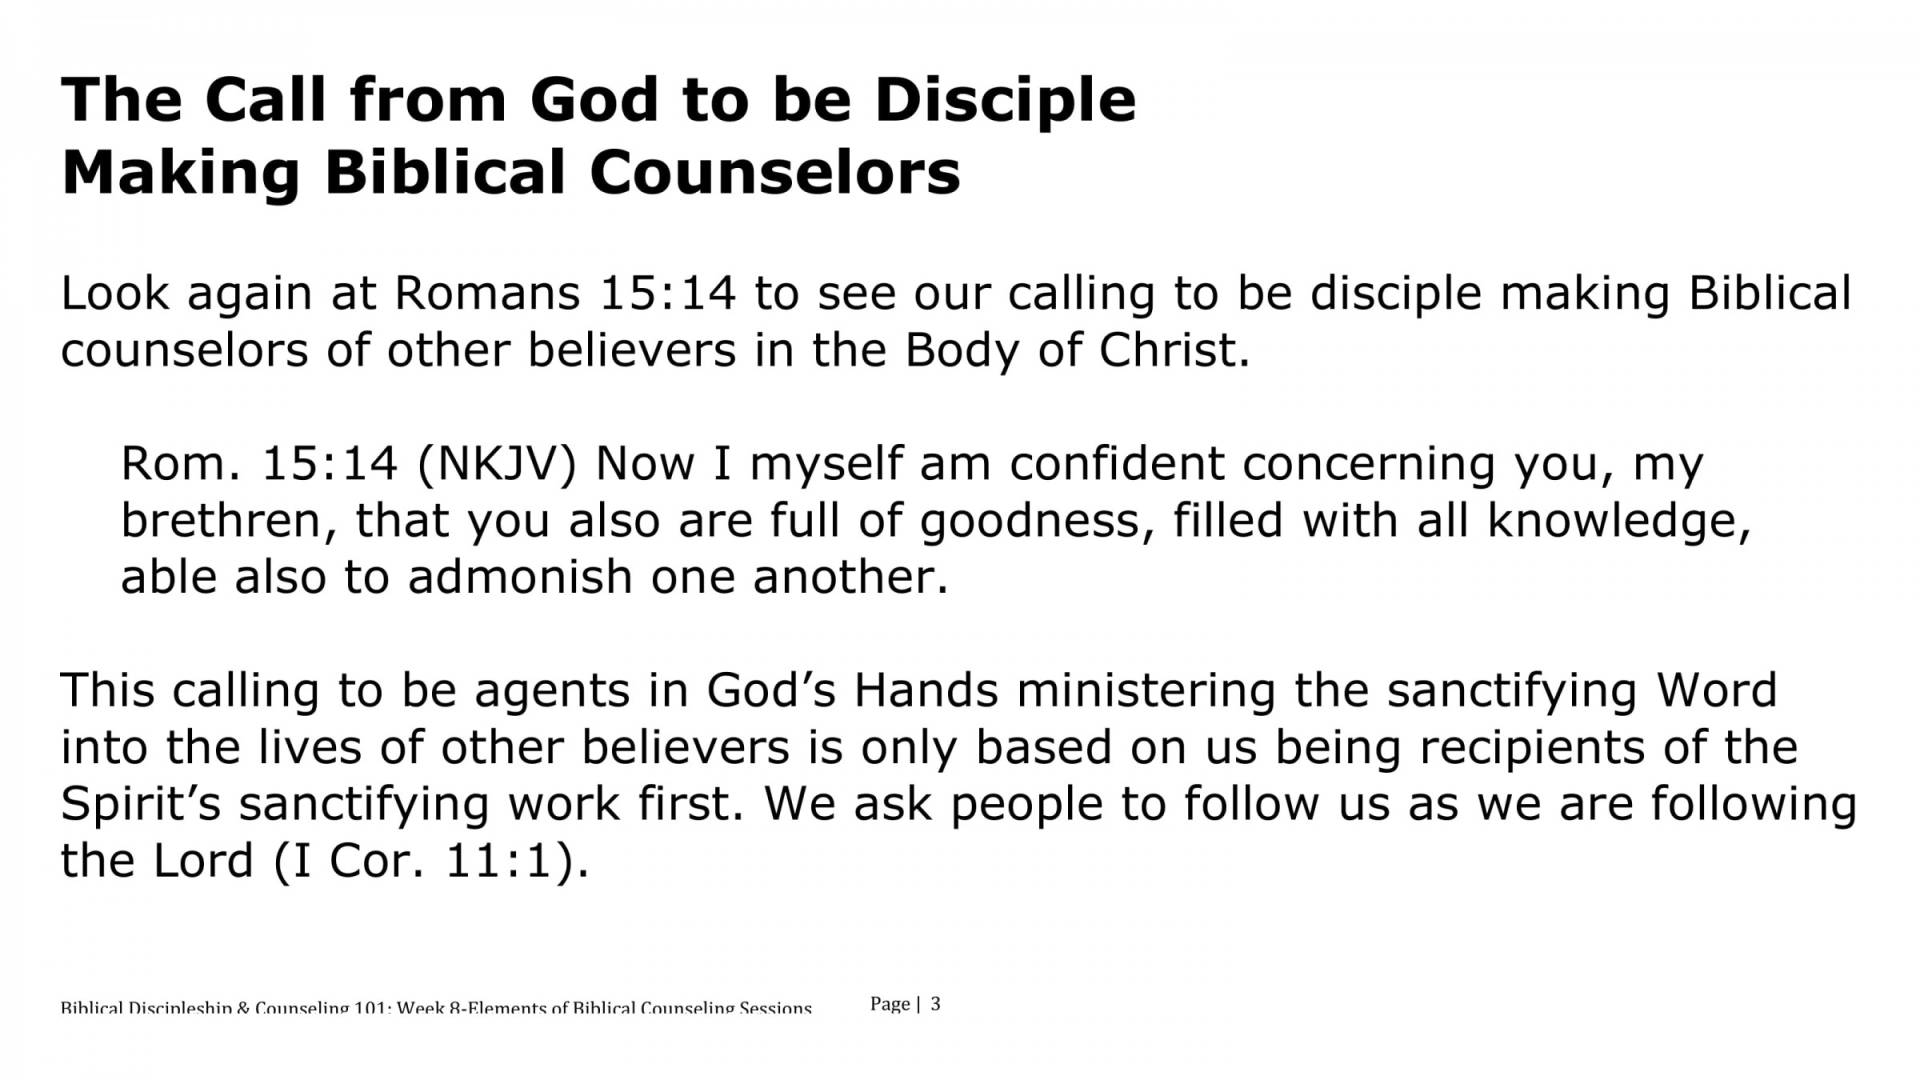 BC&D-08 - Lesson 2 - The Call From God To Be Disciple Making Biblical Counselors-03